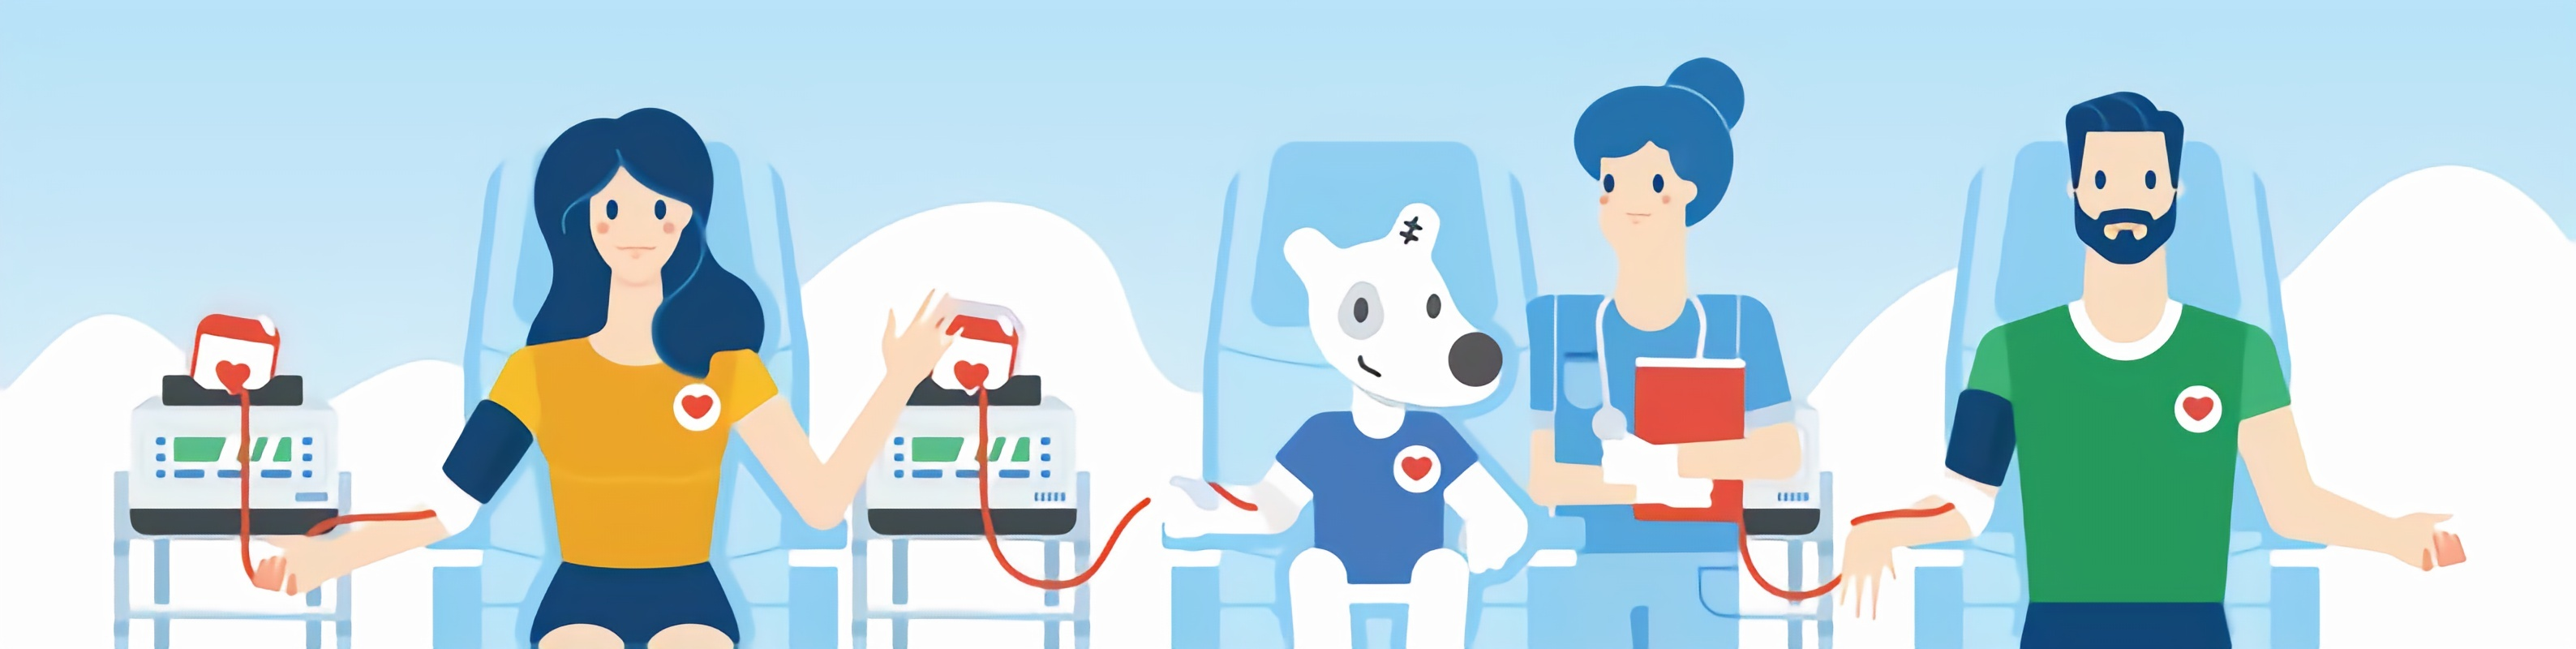 DonorSearch's experience in attracting young people to donate blood through geo-targeting VKontakte